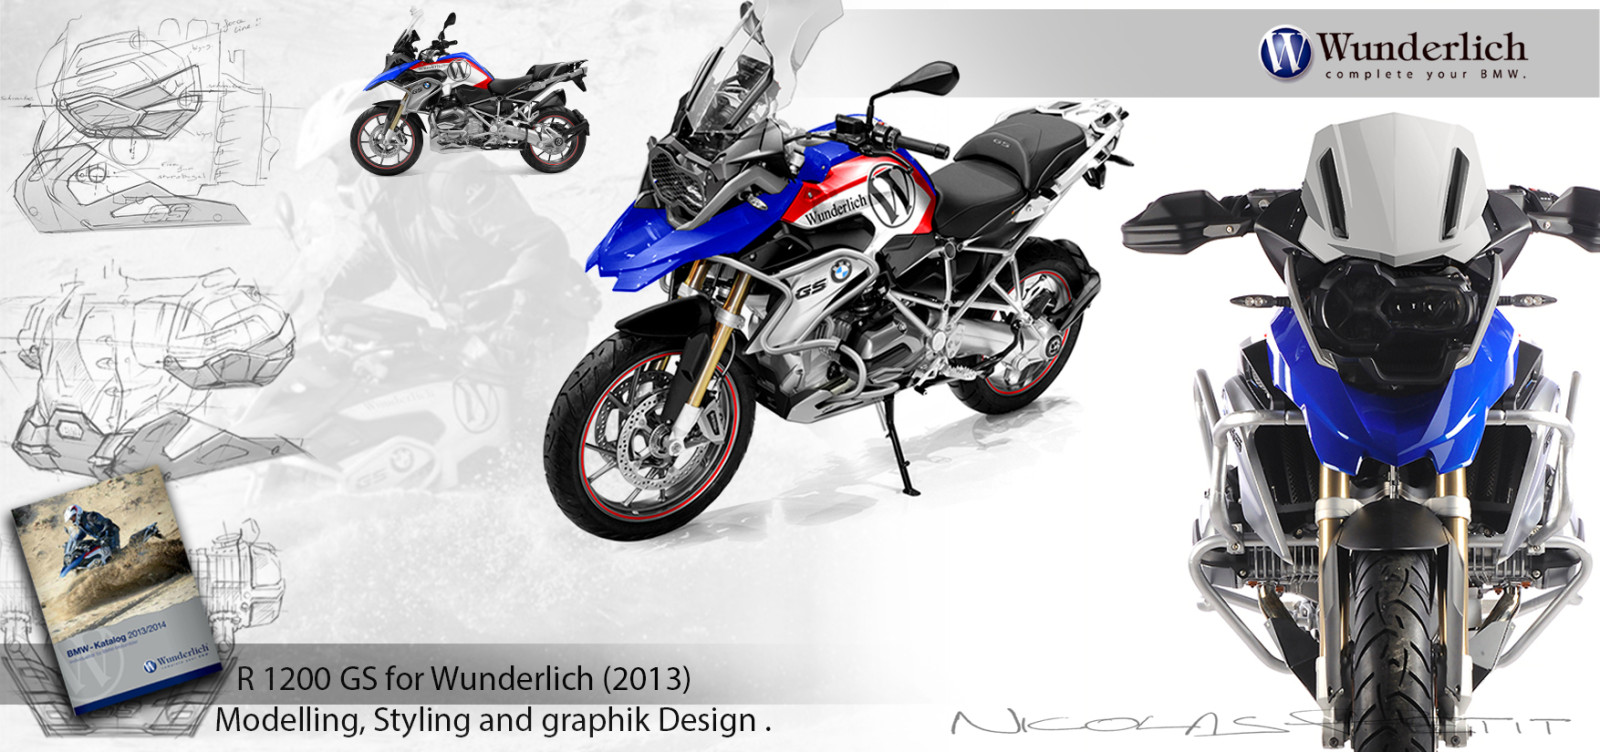 2013-bmw-r1200gs-receives-awesome-wunderlich-upgrades-photo-gallery 3